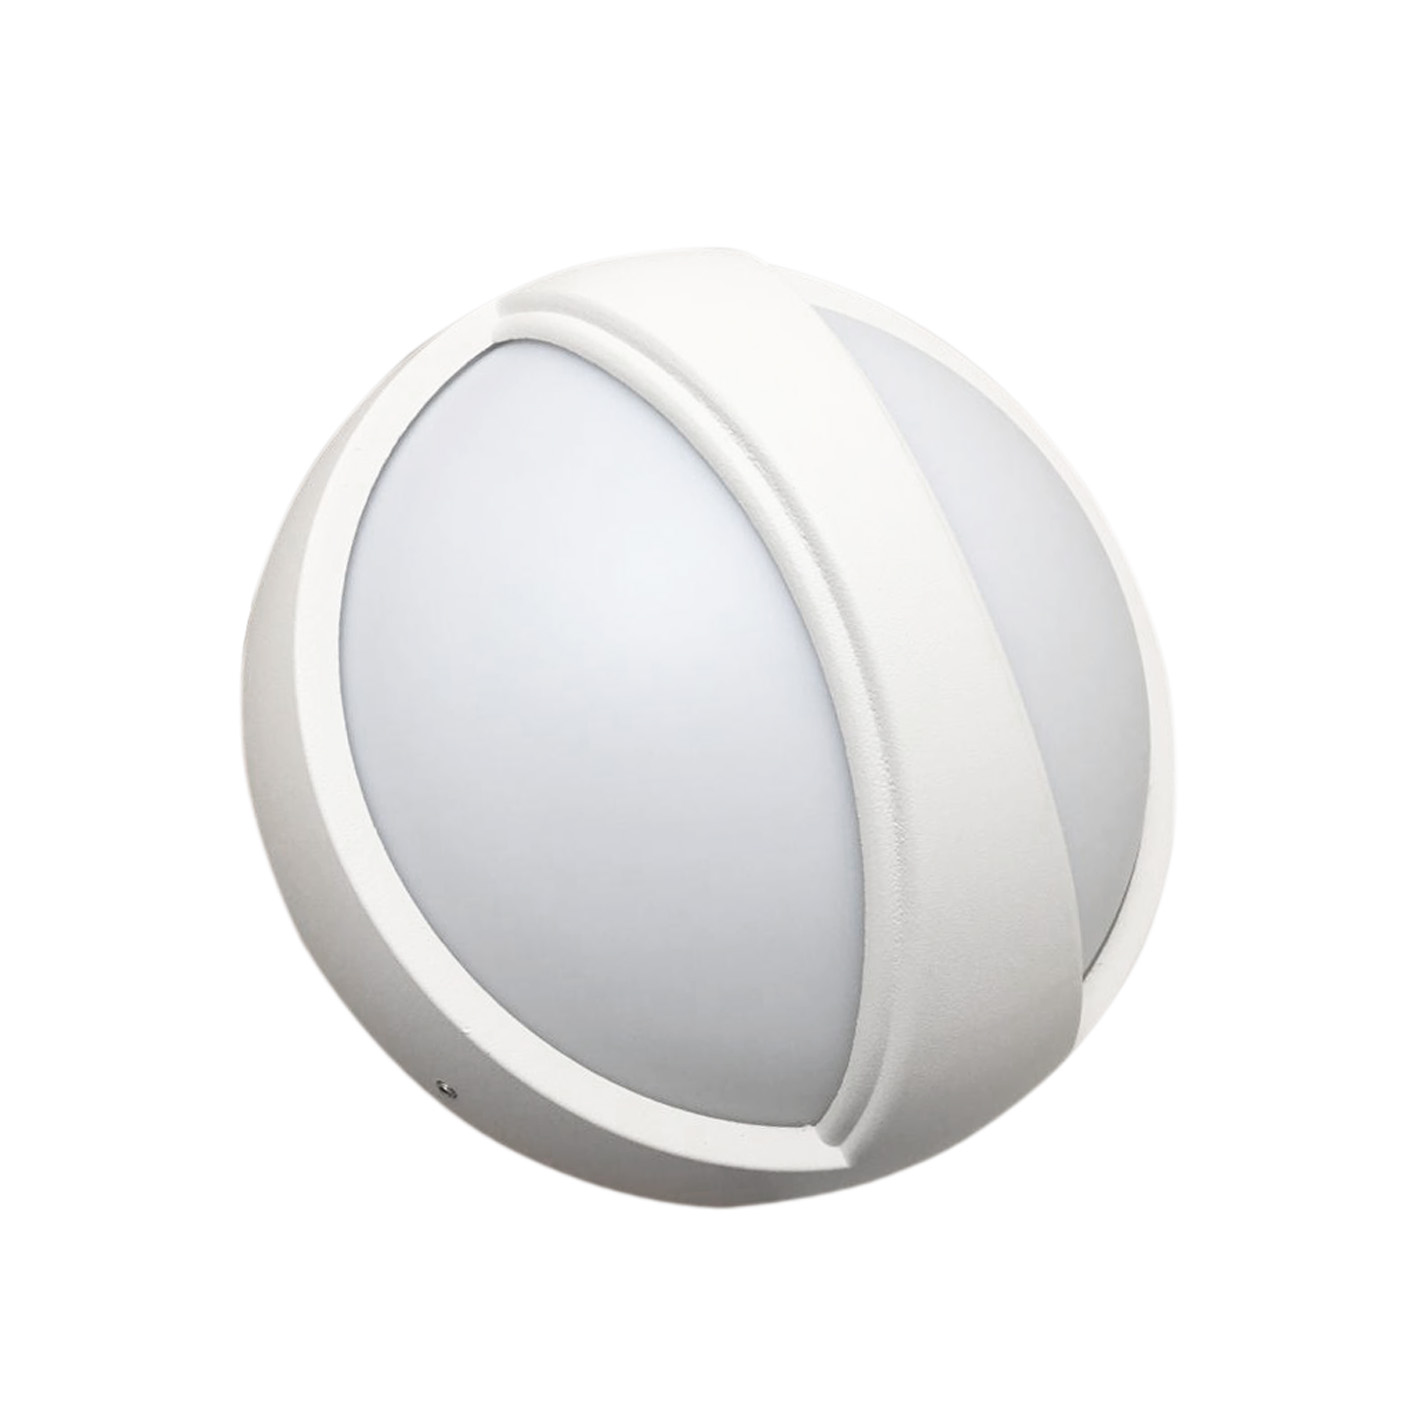 Lampadari A Led Per Interni lampada led 15w applique da parete semisfera ufo per interni b78-15w